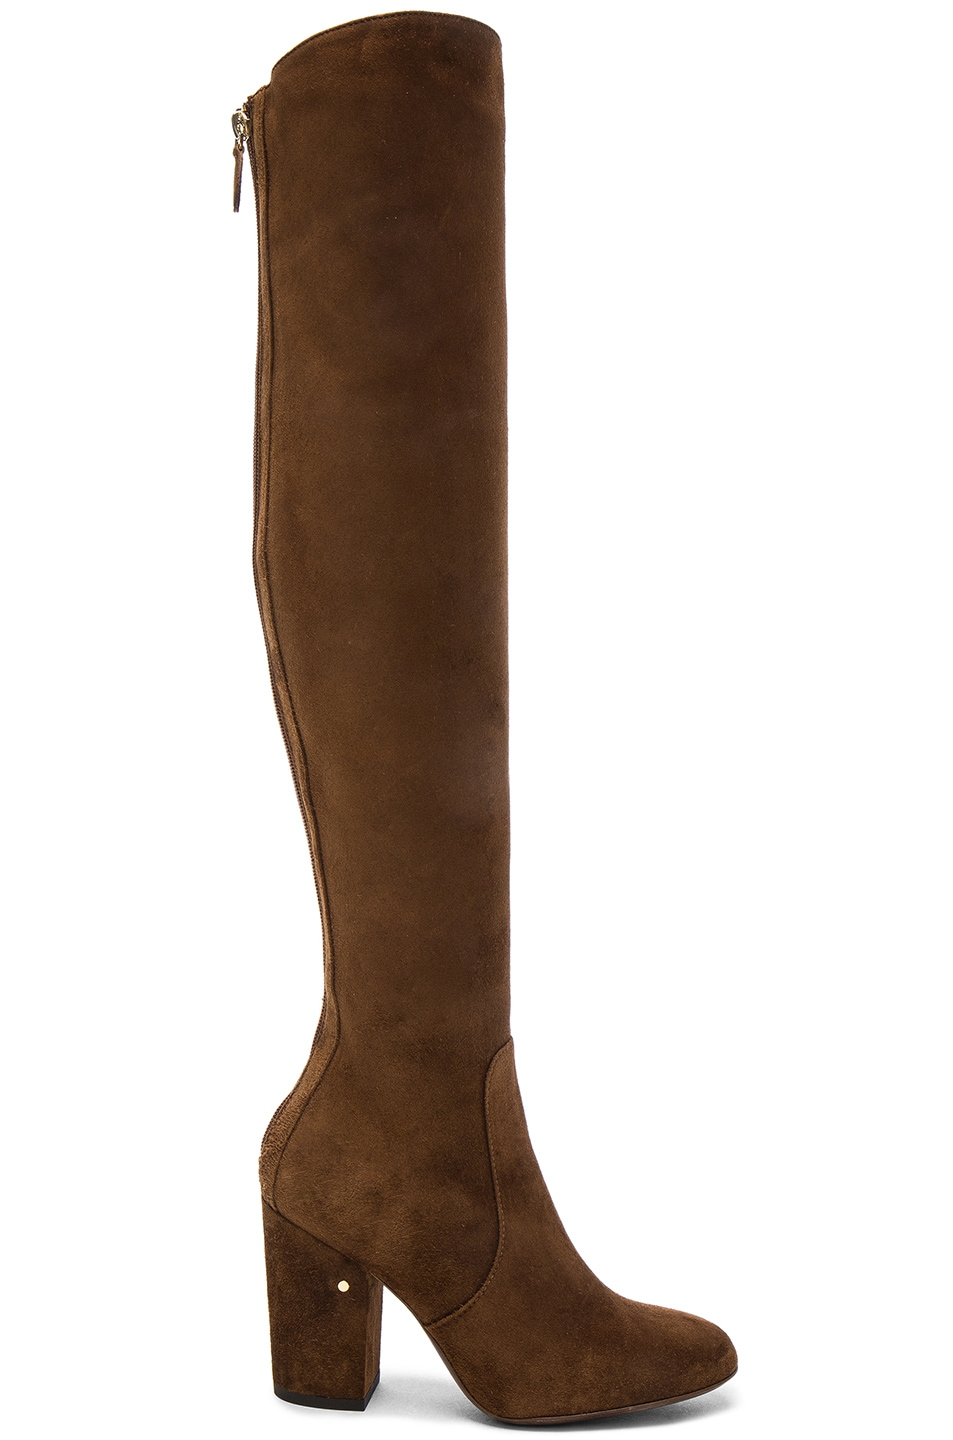 Image 1 of Laurence Dacade Suede Illusion Boots in Cognac